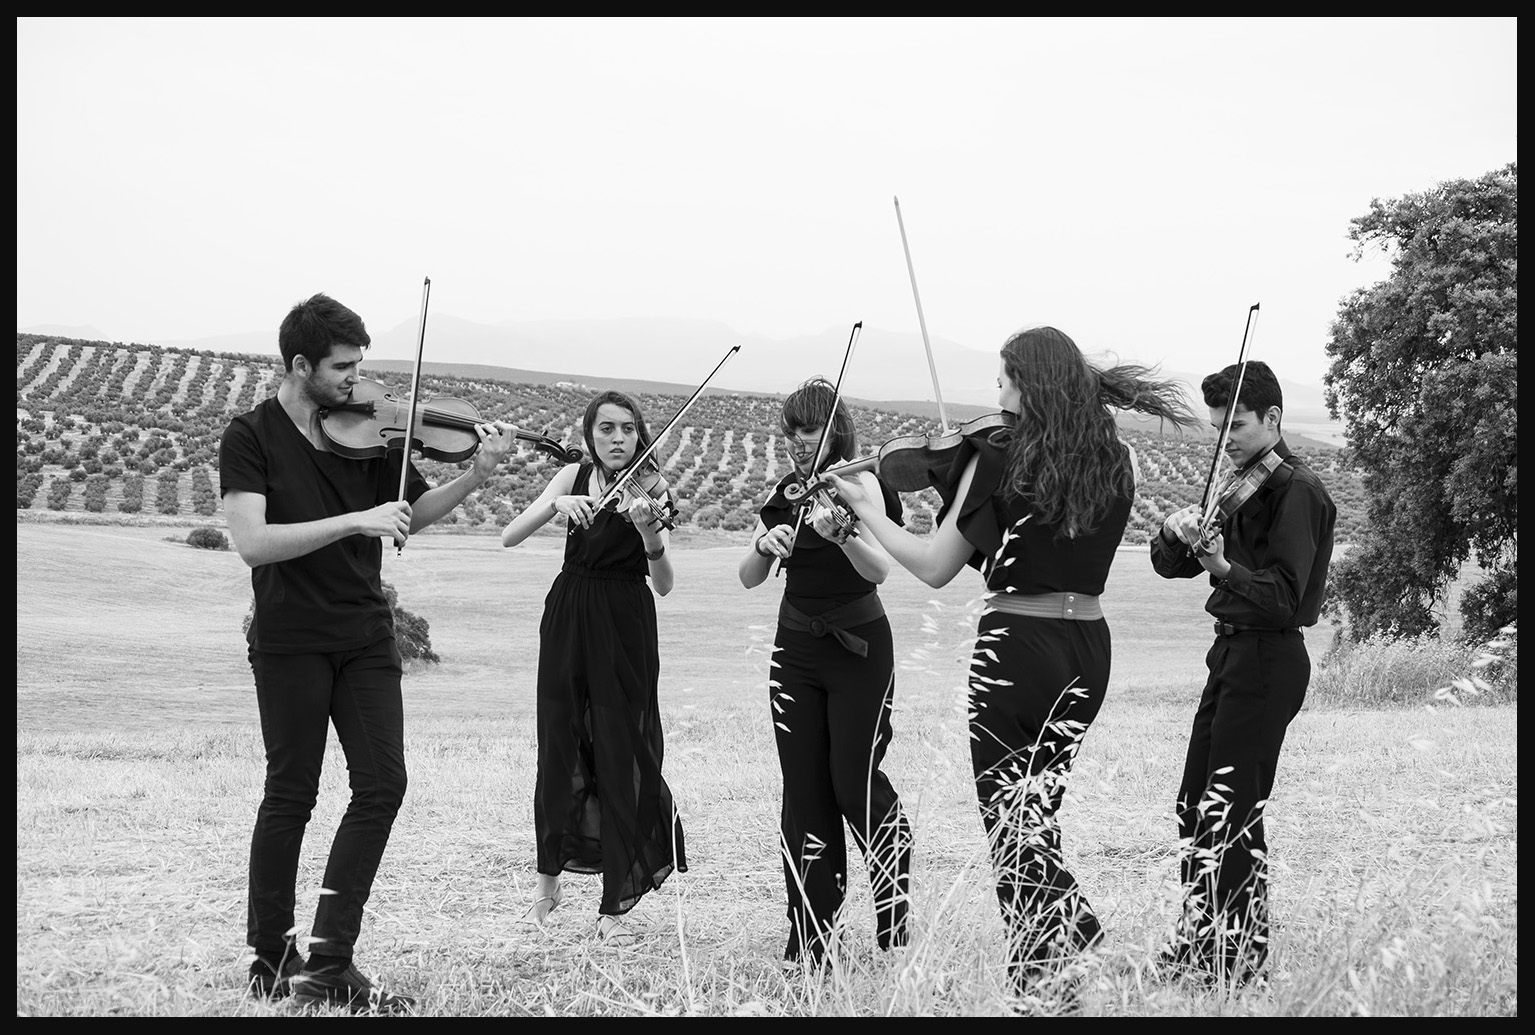 Youth String Orchestra Allegro   Fuji XT1 with Fujinon XF 18-135mm © 2017 Miguel Witte